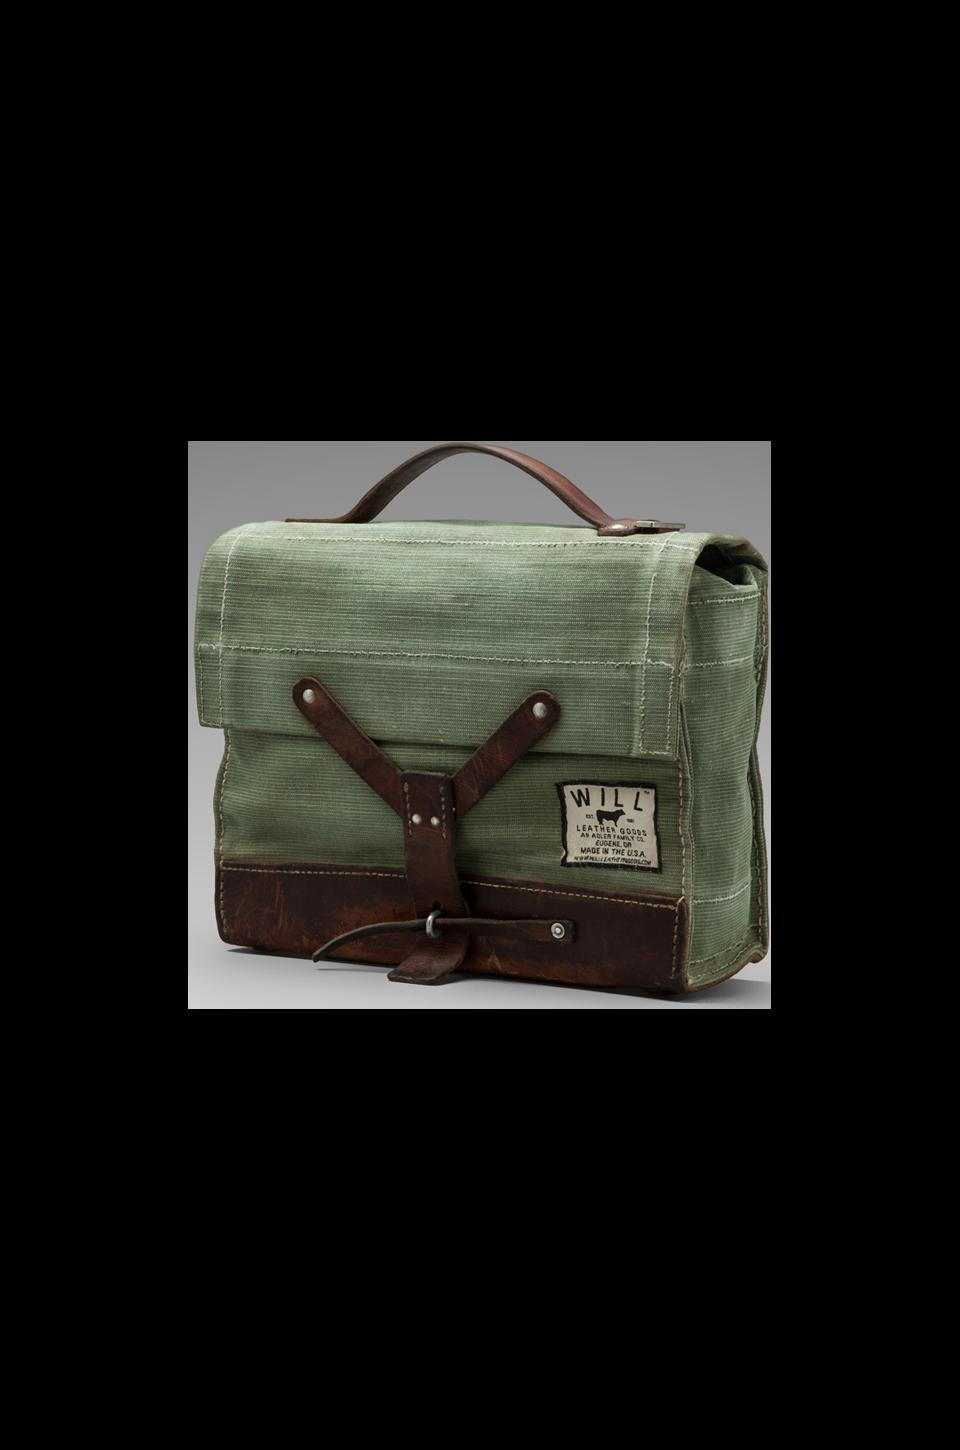 WILL Leather Goods Repurposed Swiss Medic's Bag